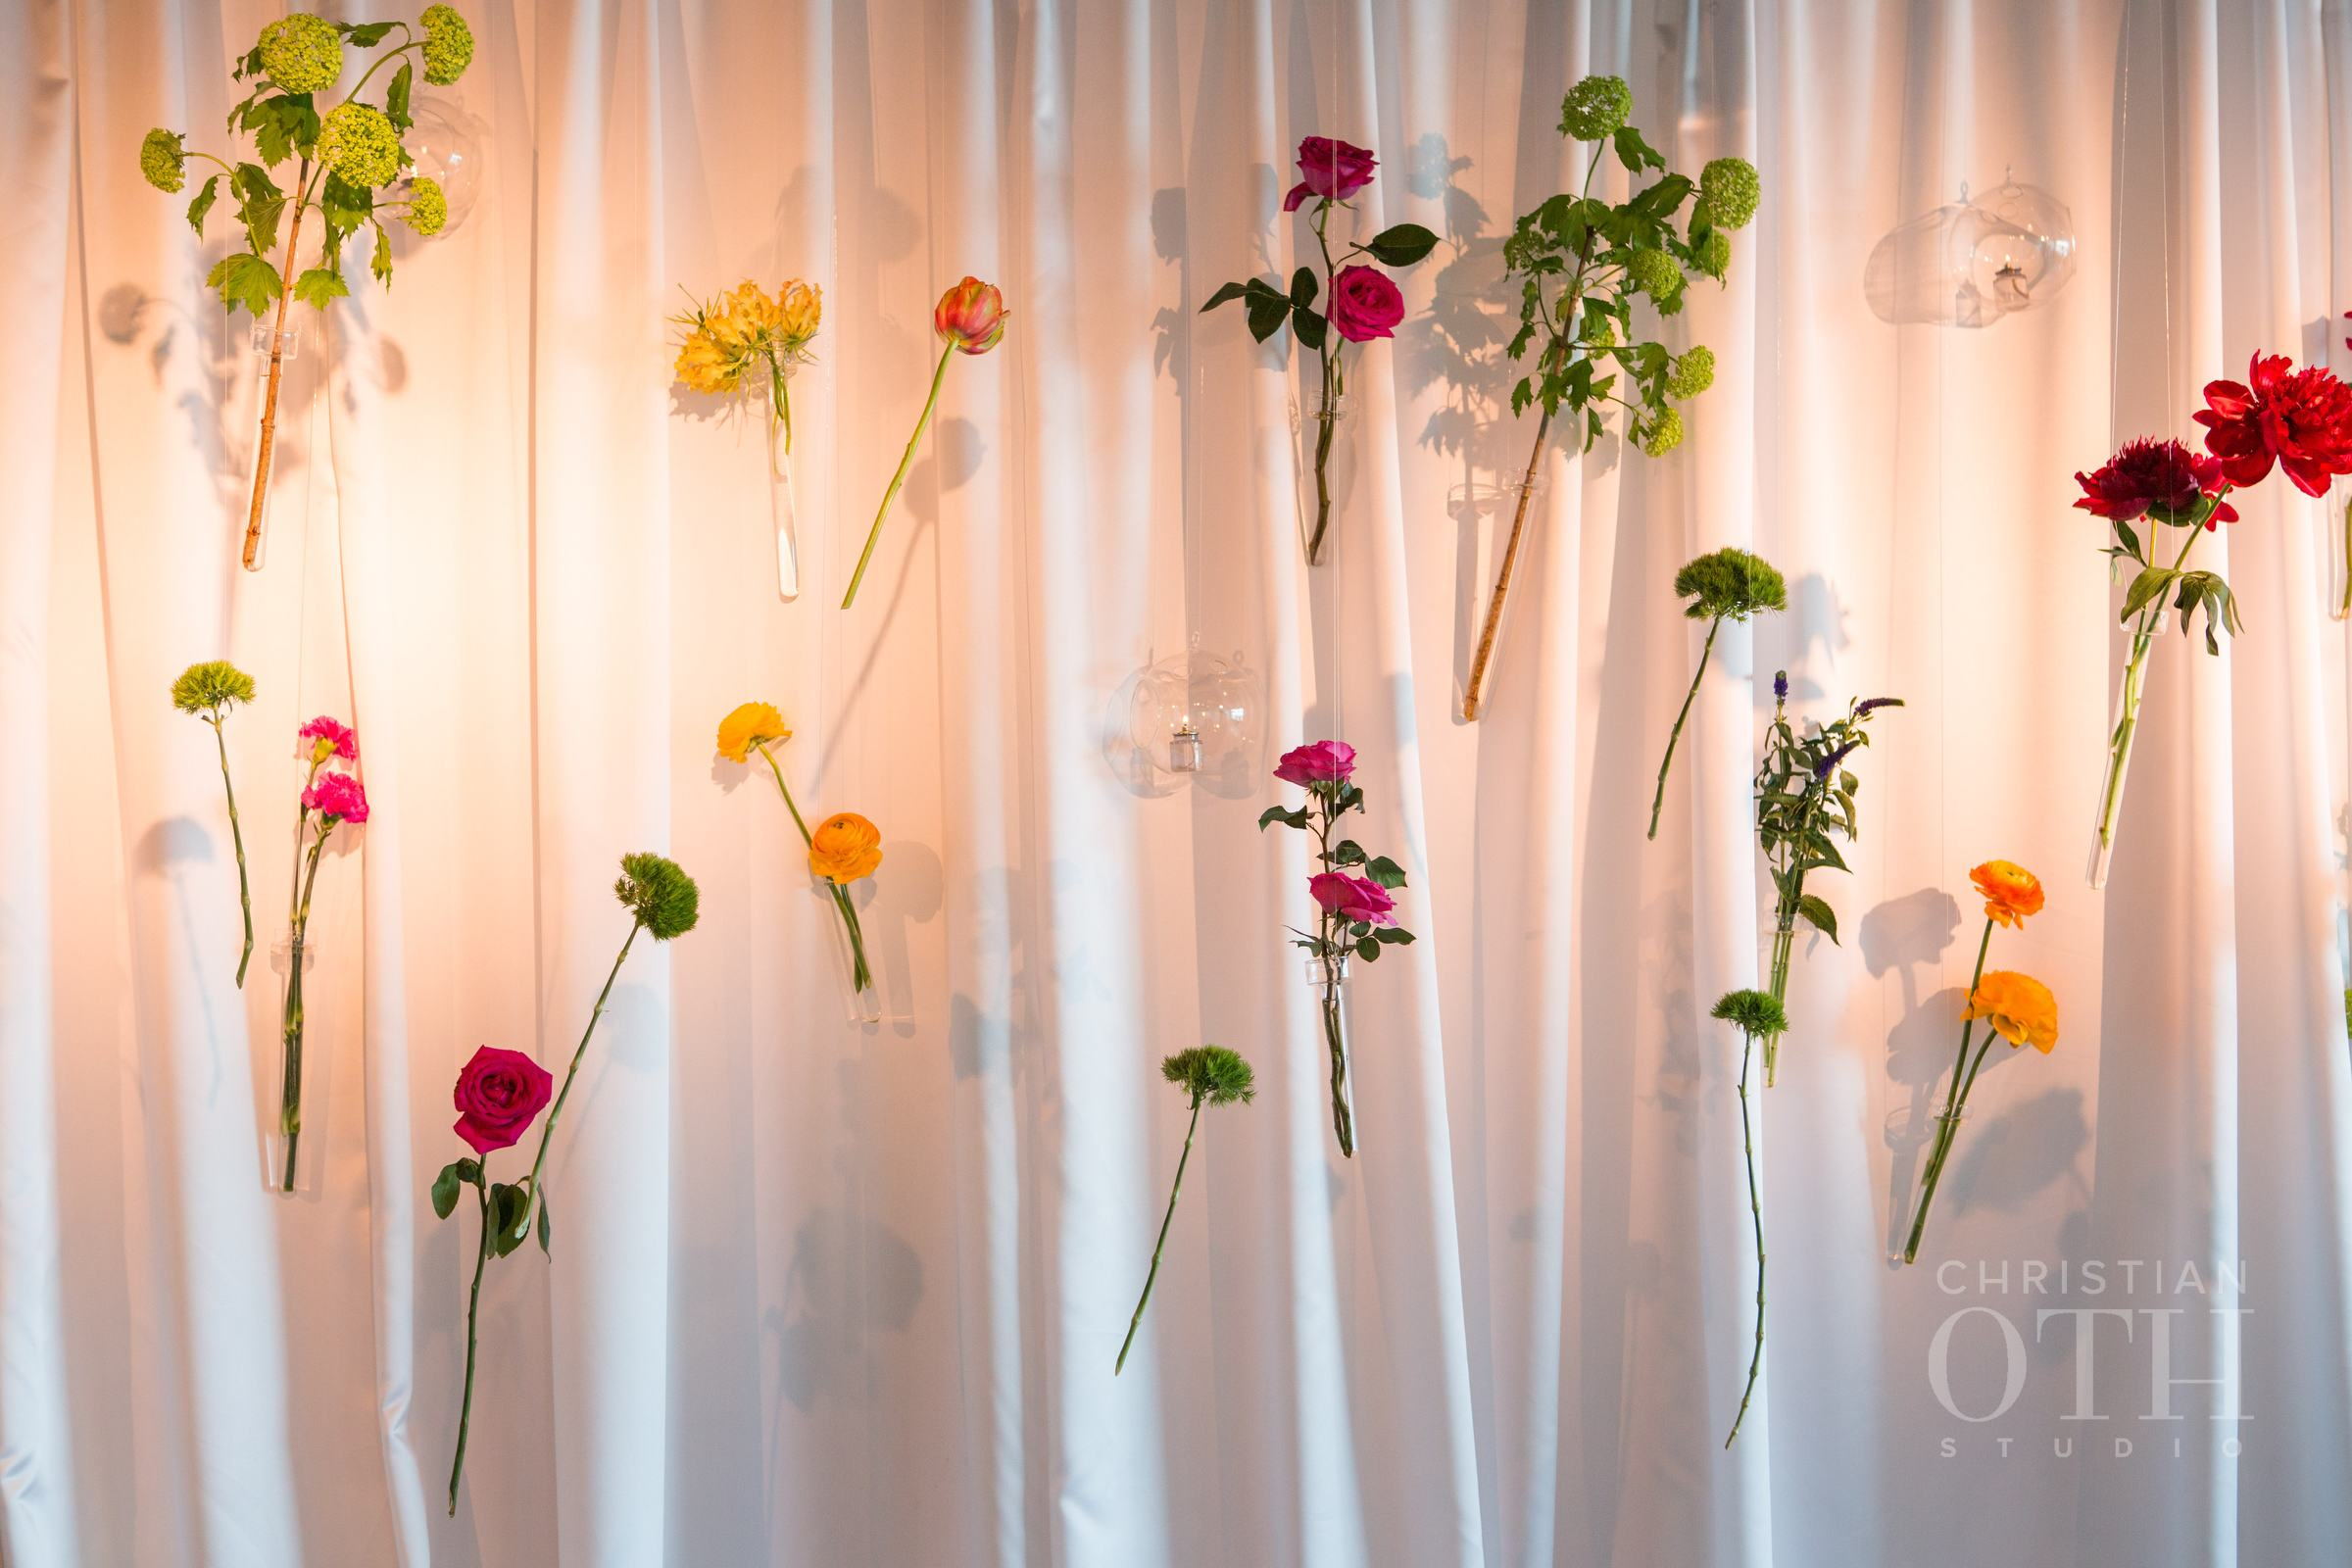 INSTALLATION OF BRIGHT HANGING FLOWERS IN TEST TUBES